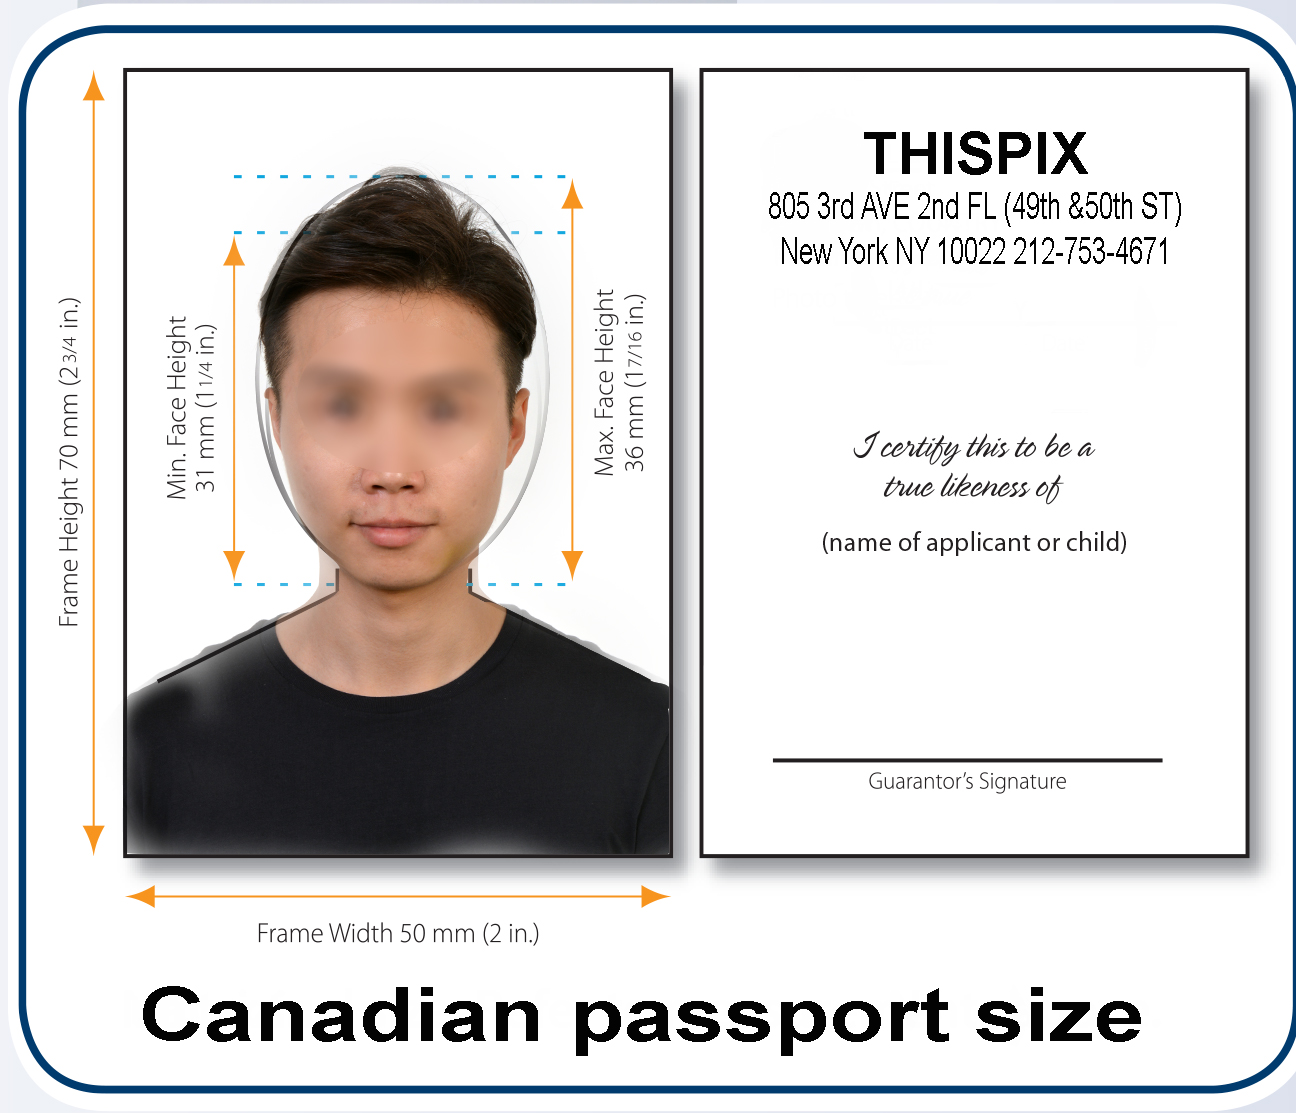 Live Scan Fingerprinting - Passport/Visa/Citizenship/ID Irish passport size photo dimensions